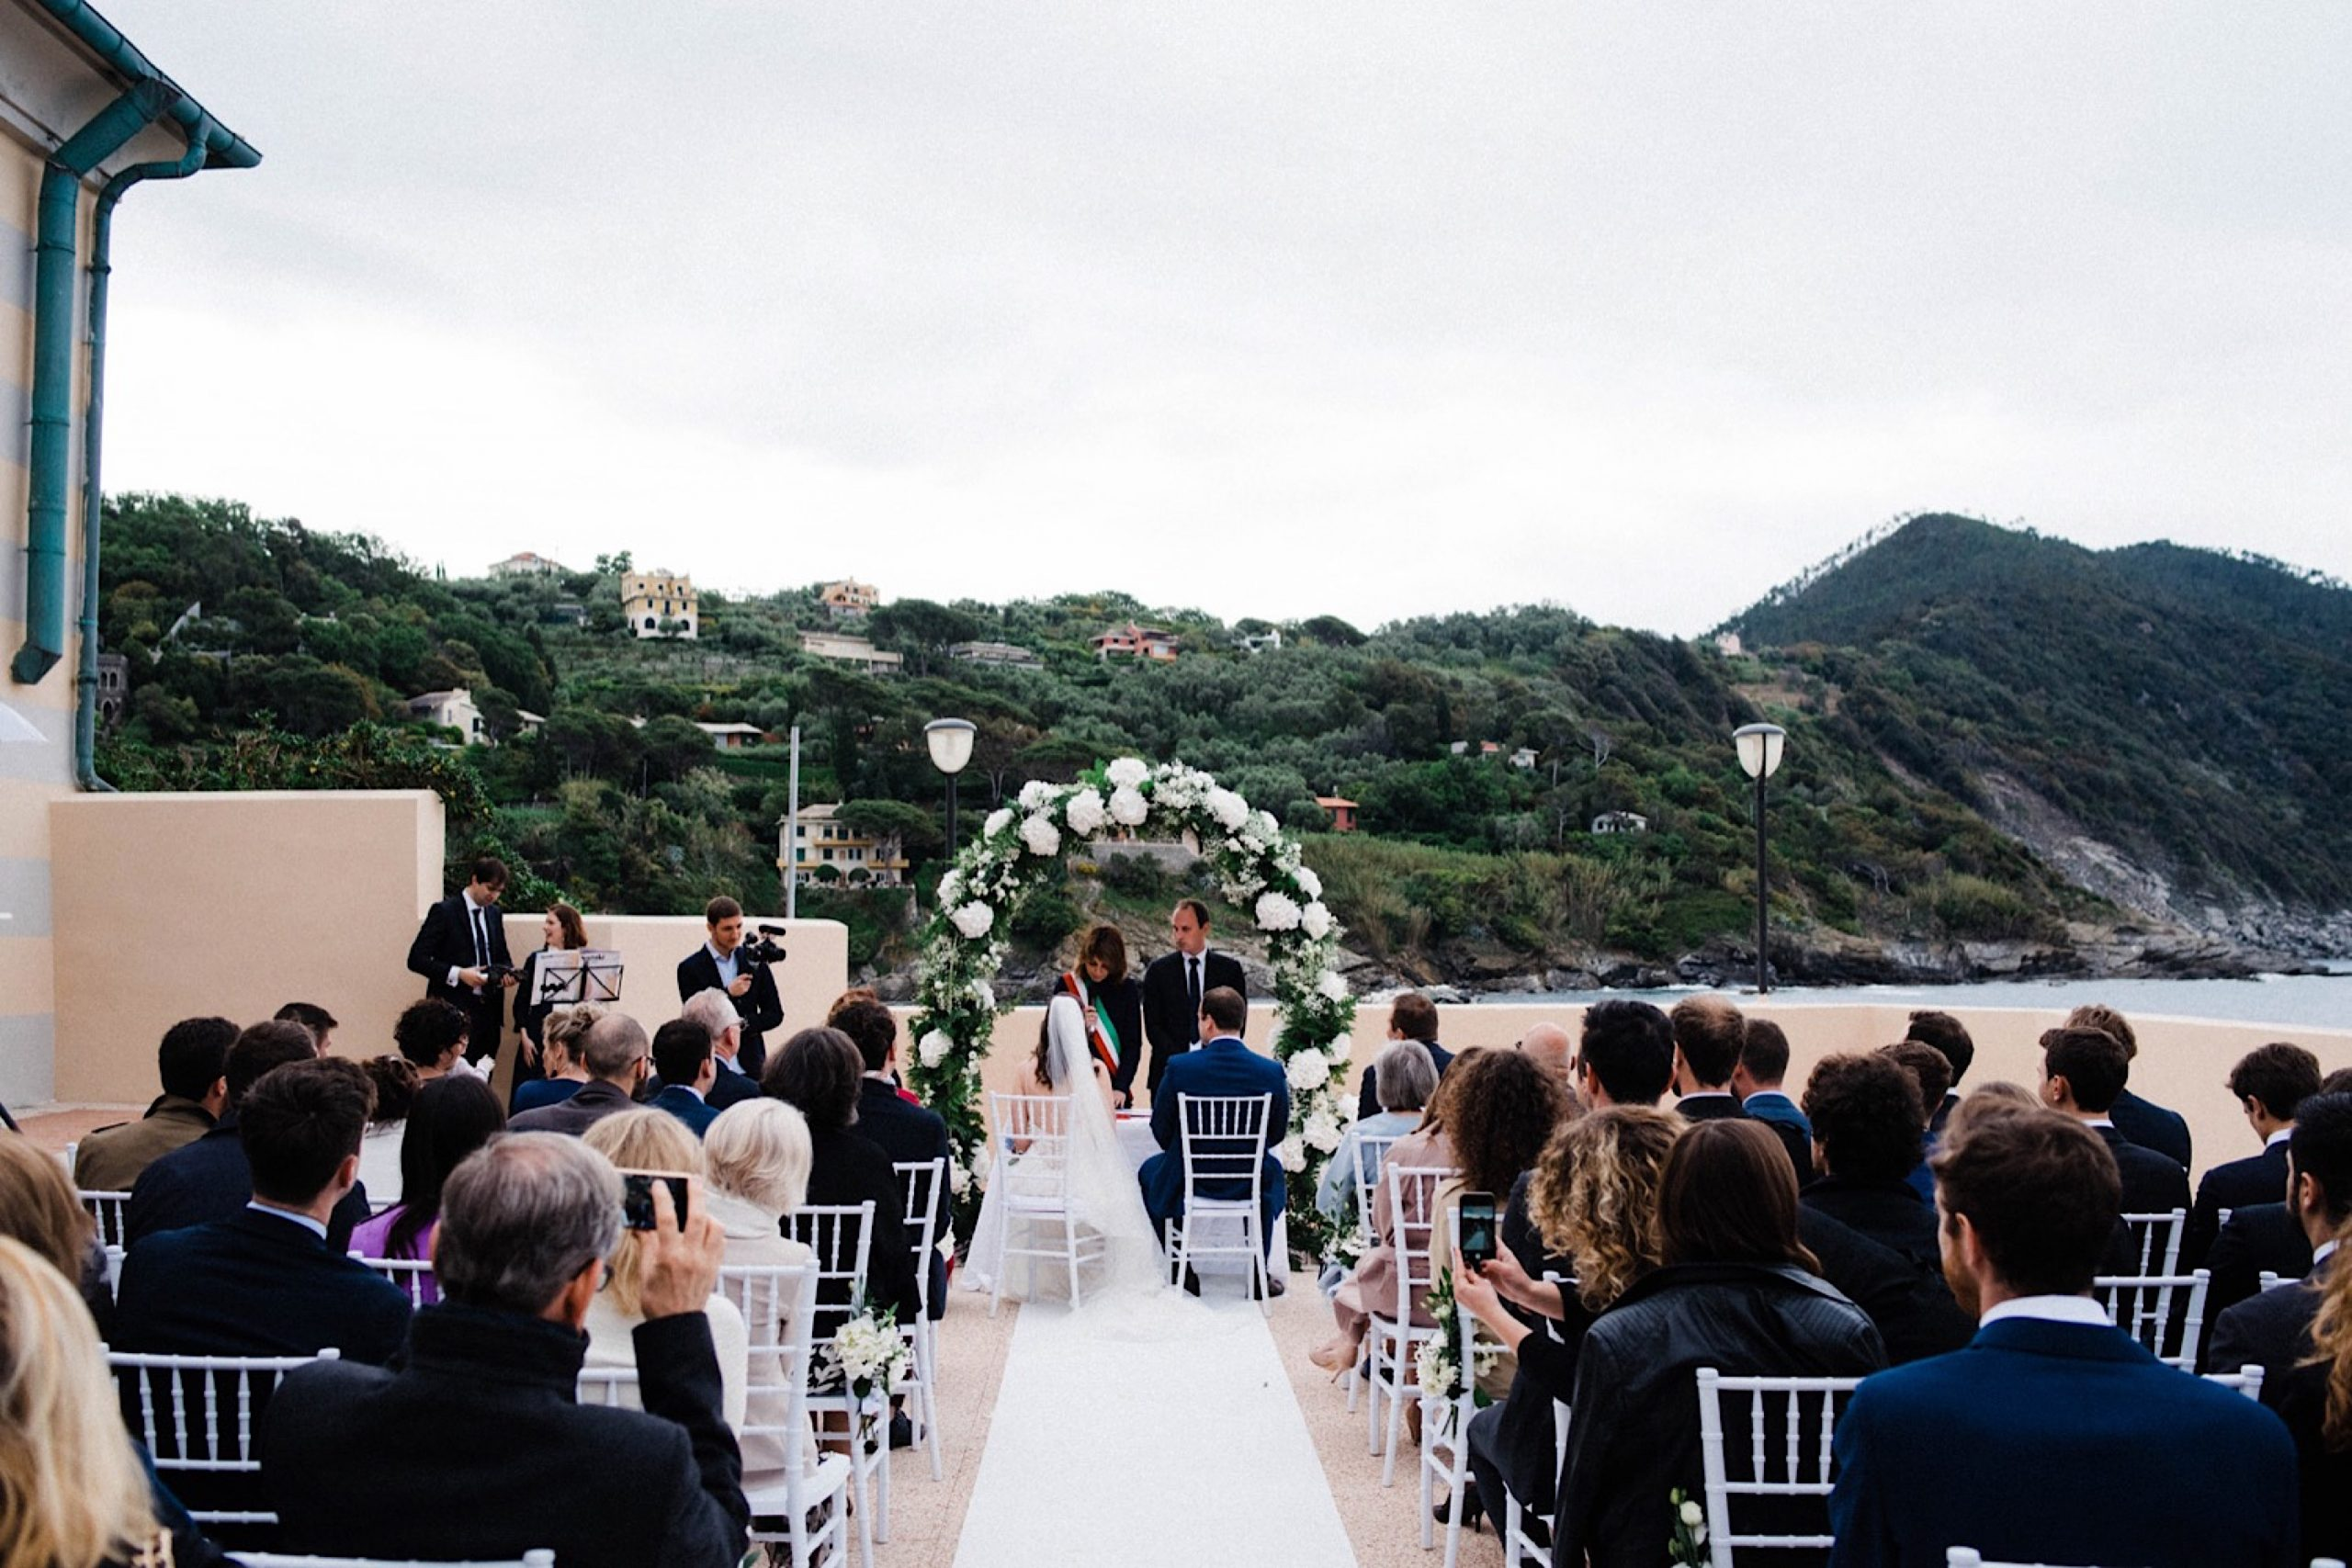 A photo of a Wedding Ceremony at the ex-Convento dell'Annunziata with the groom & bride sitting in front of a floral arch.